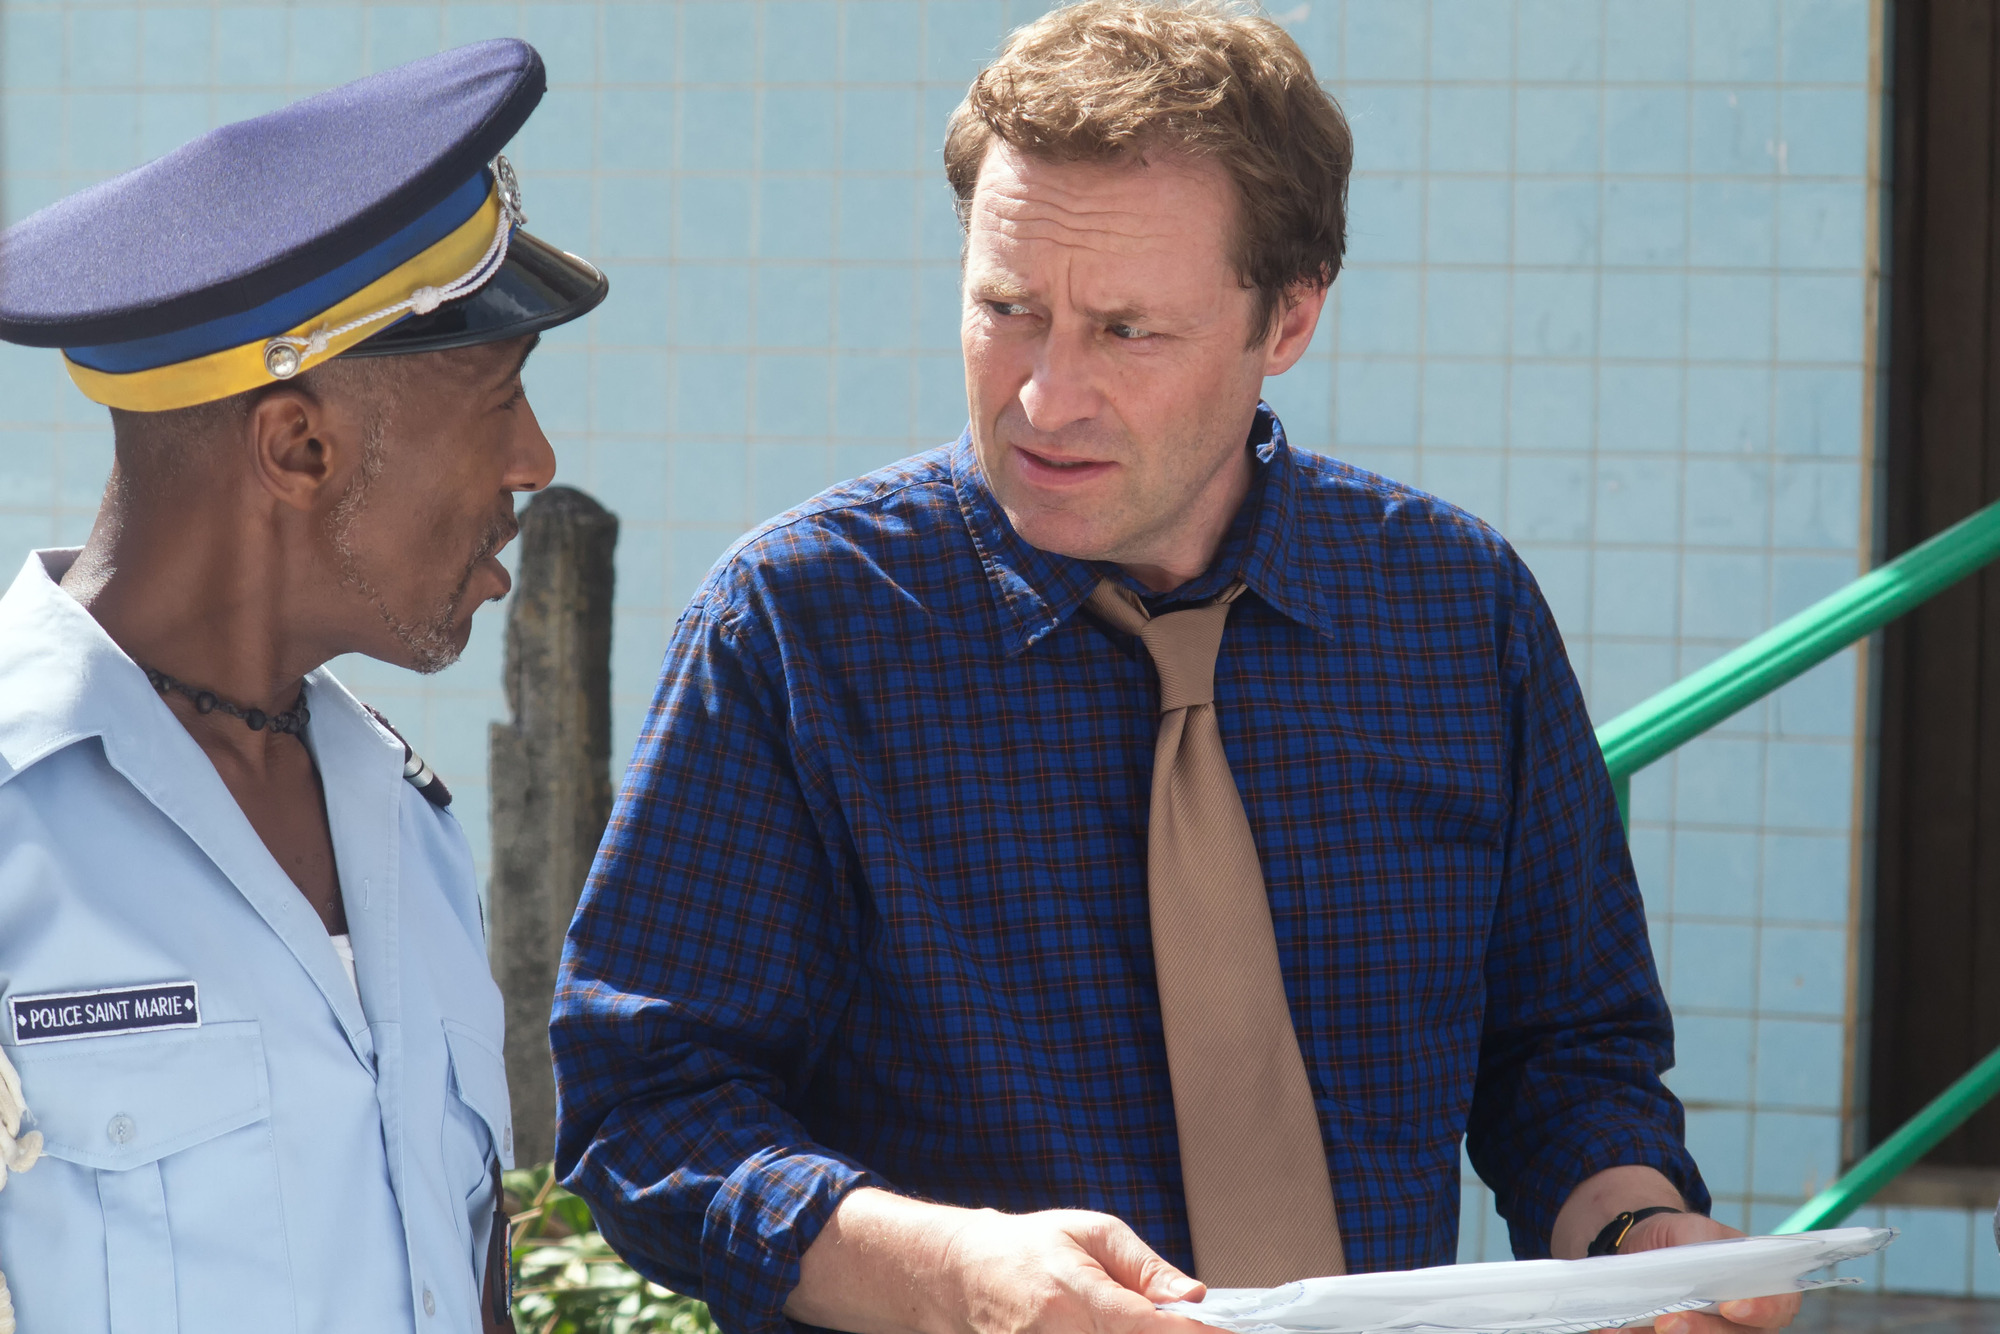 Death In Paradise's first episode with Ardal O'Hanlon as DI Mooney left fans missing Humphrey